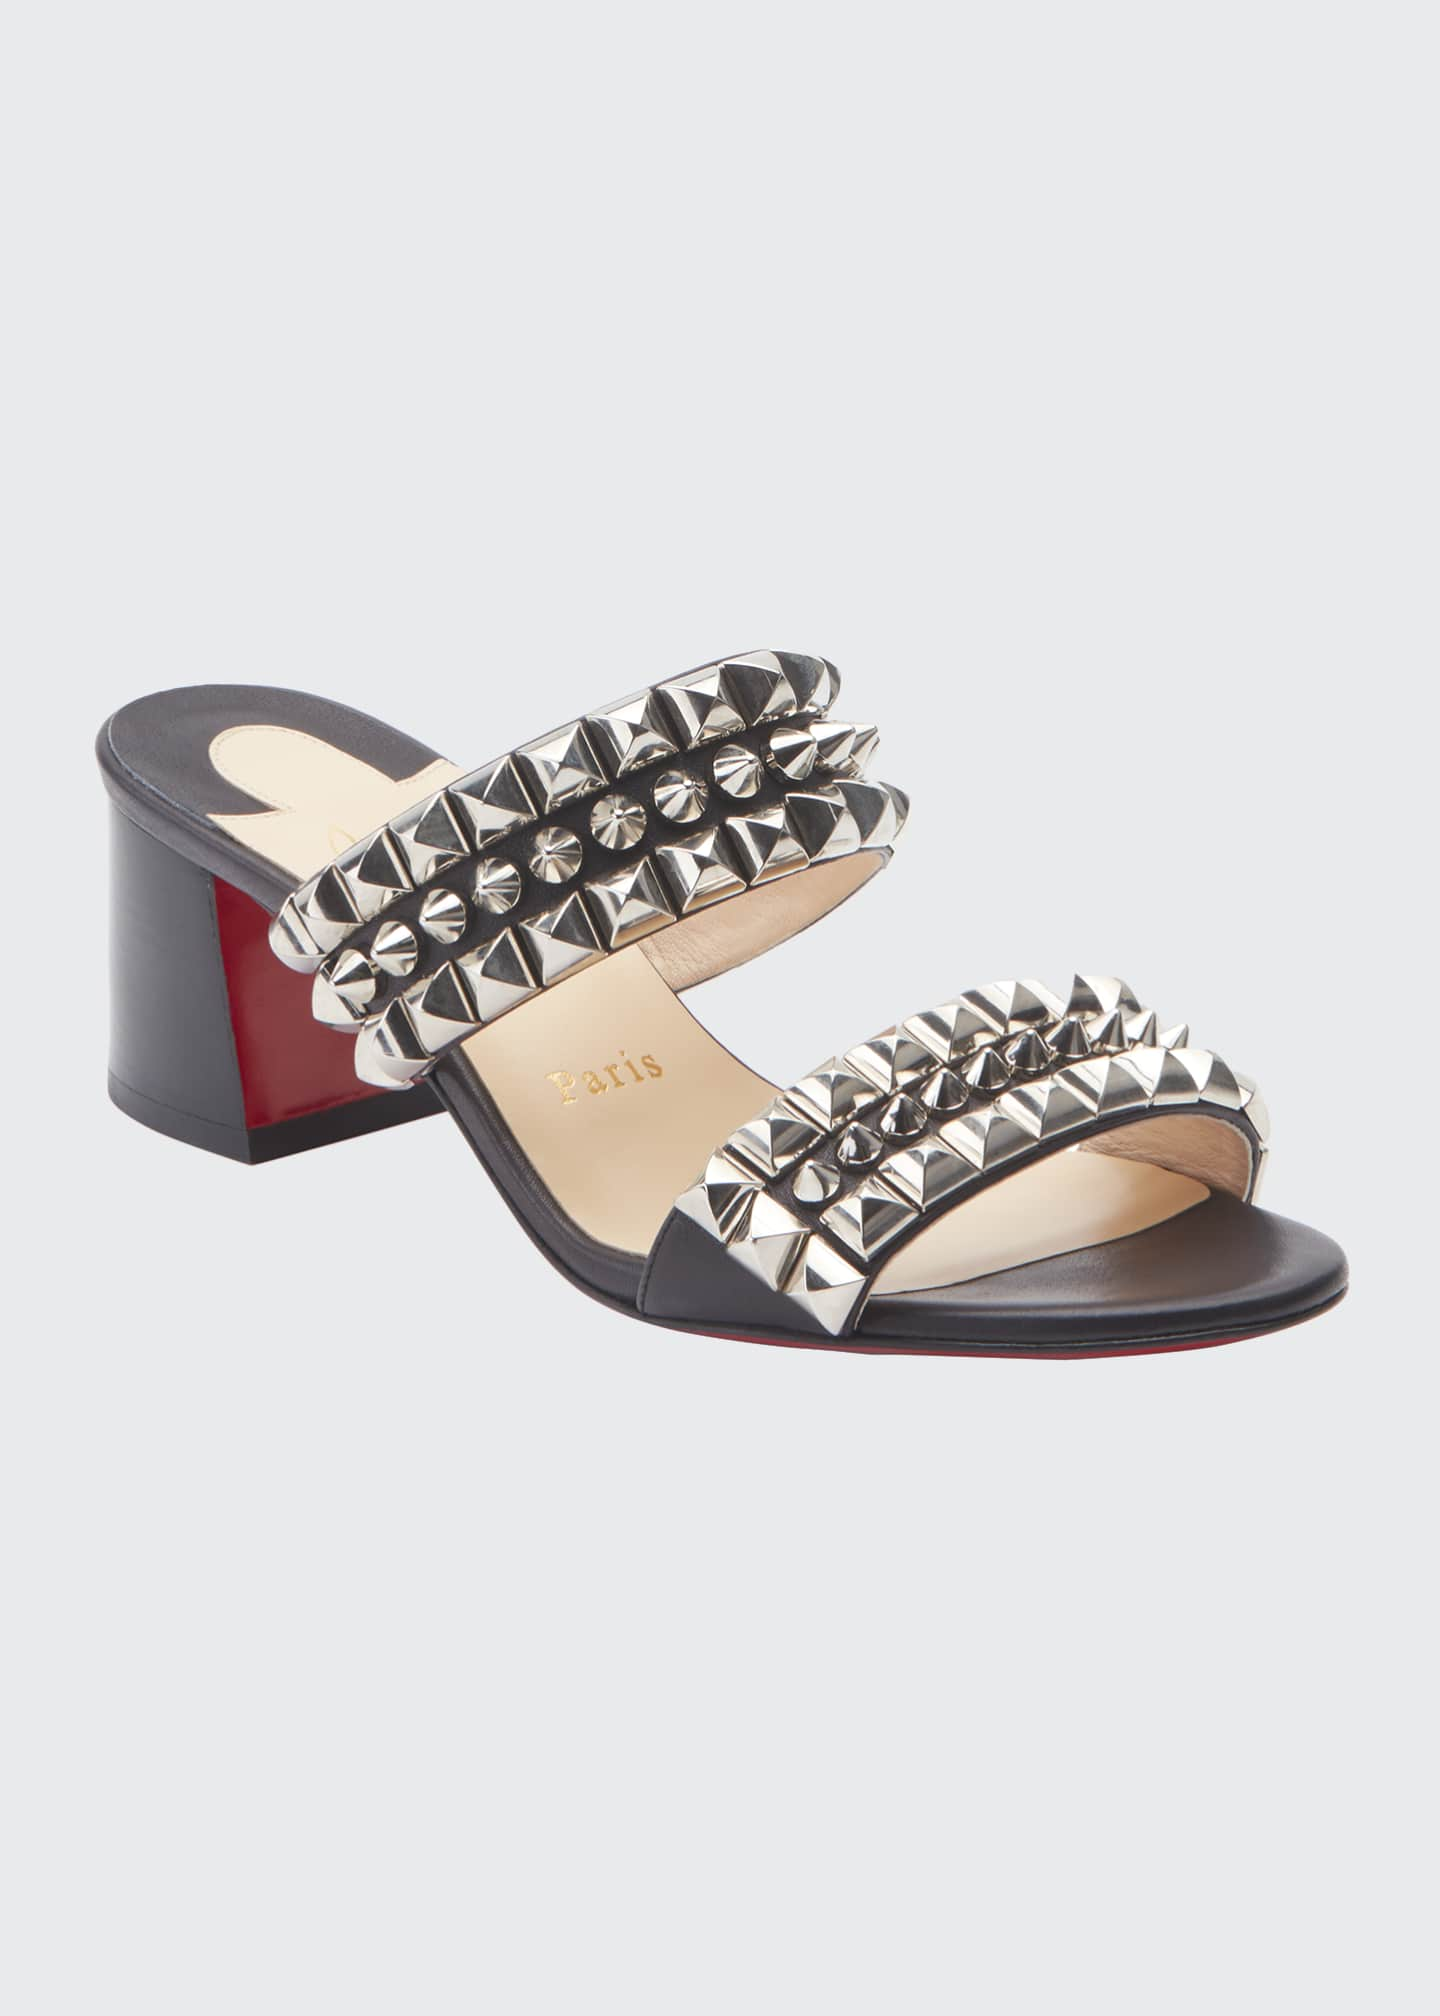 Image 1 of 3: Tina Goes Mad 55 Leather Red Sole Sandals